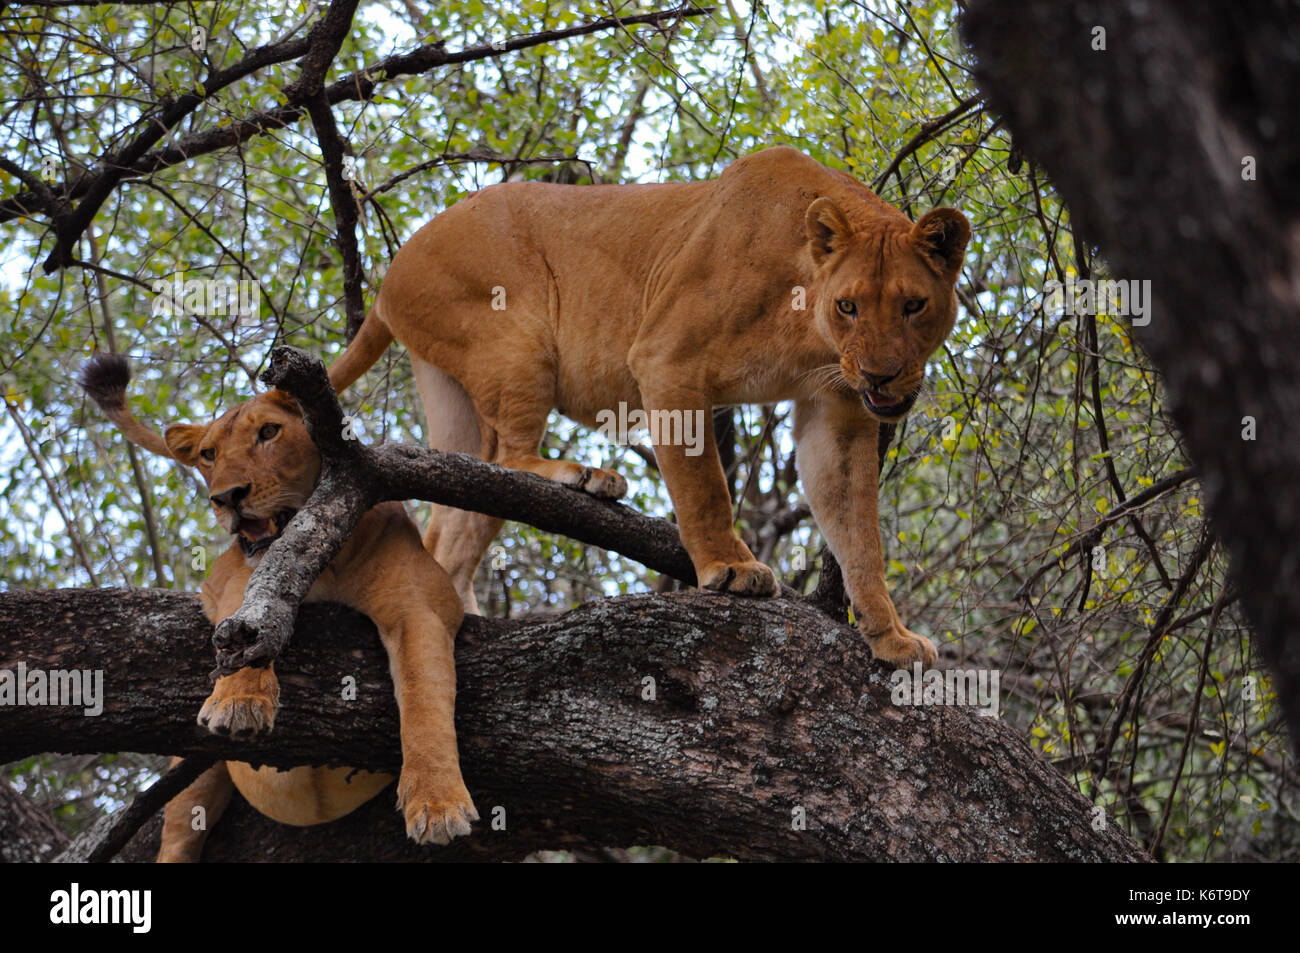 Two lionesses in a tree in Lake Manyara National Park, Tanzania. - Stock Image